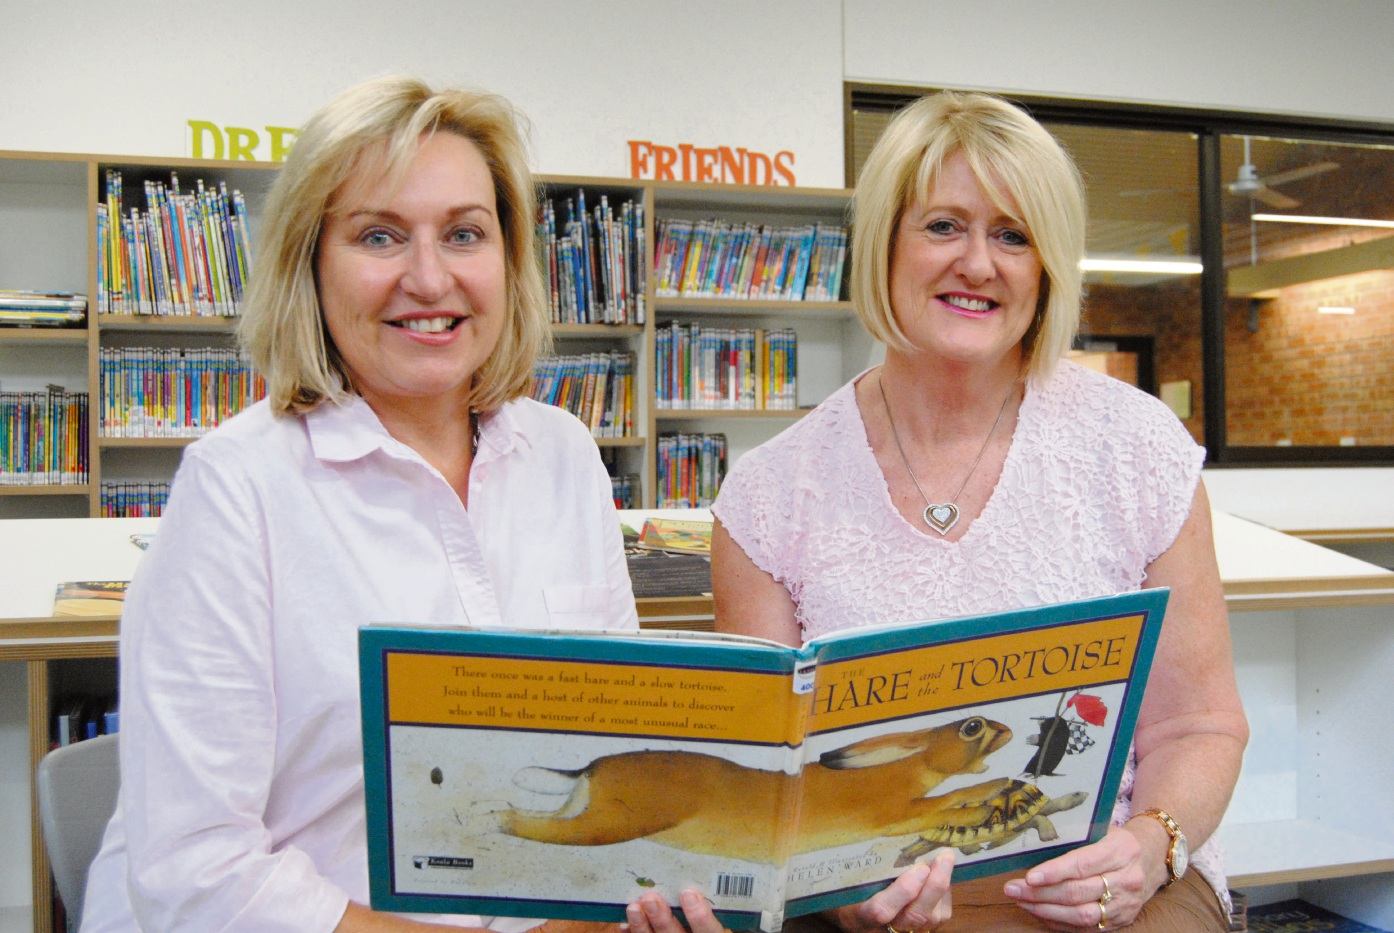 St Stephen's School head of library services Lise Legg and head of primary libraries Jo-Anne Urquhart.